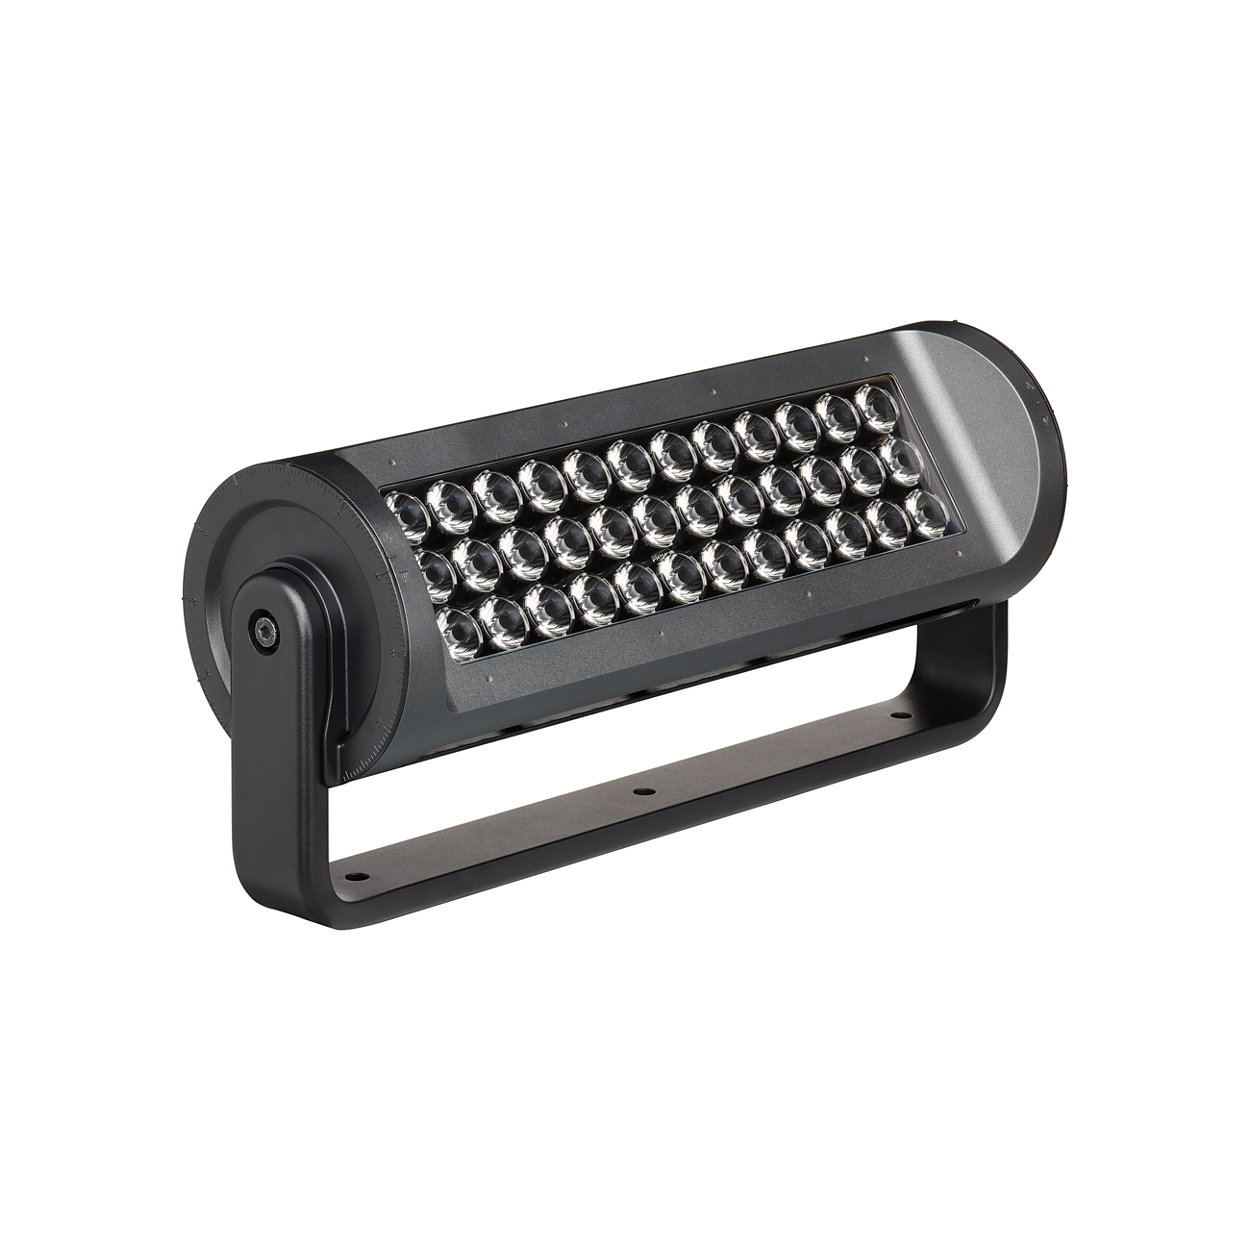 High-performance long-throw exterior LED luminaire with essential white light